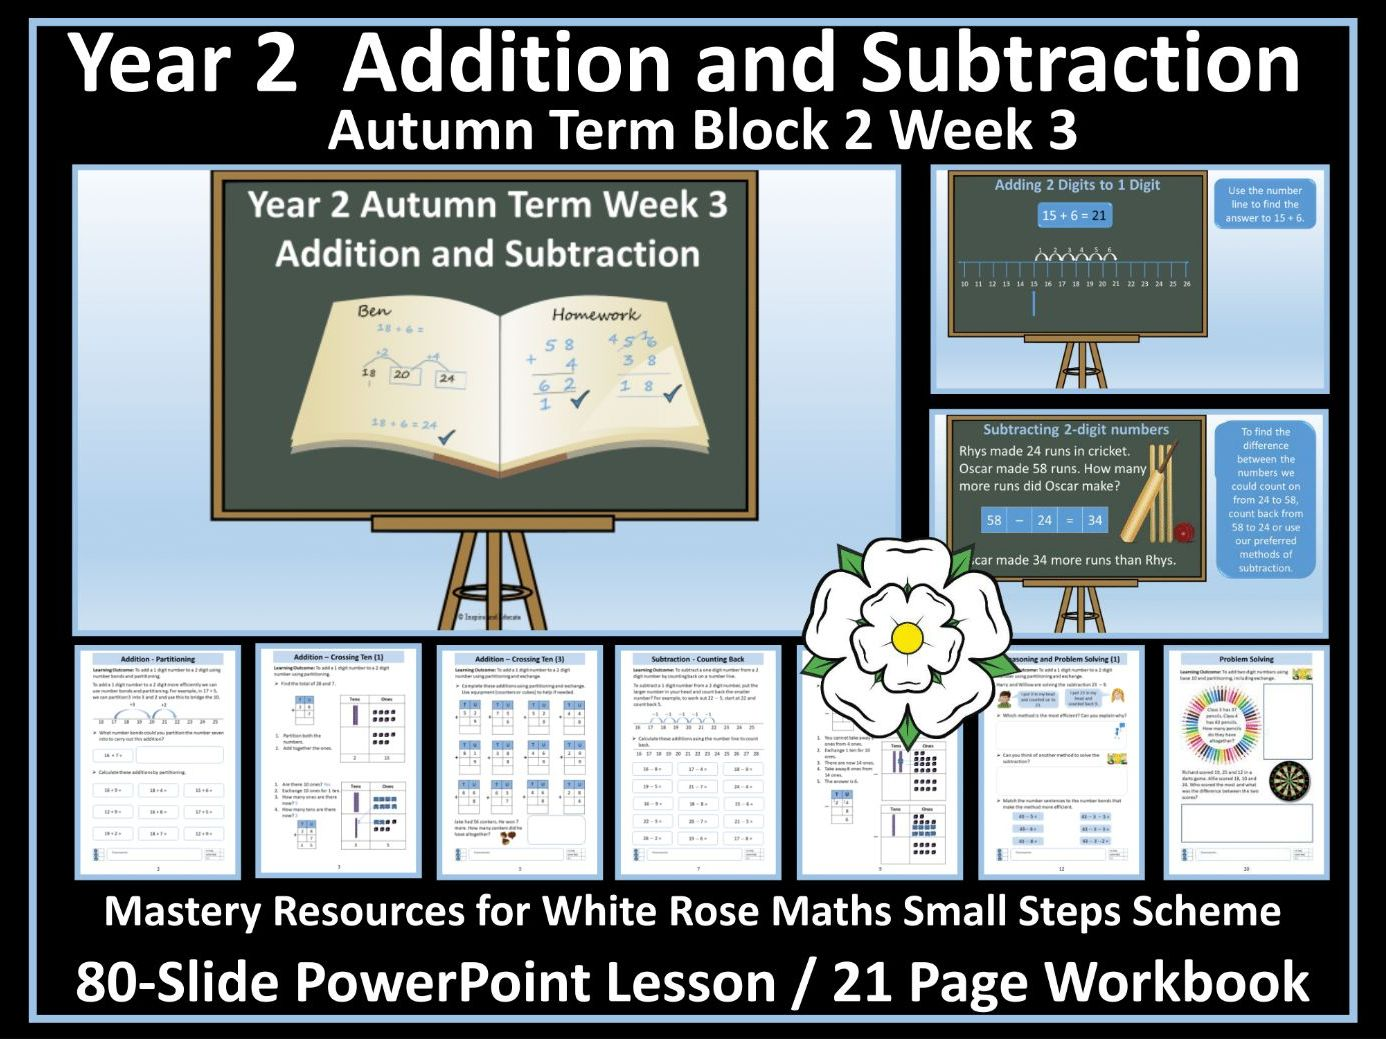 Addition and Subtraction: Year 2 -PowerPoint Lesson and Workbook 3 - White Rose Small Steps - Year 2 - Block 2 - Autumn Term